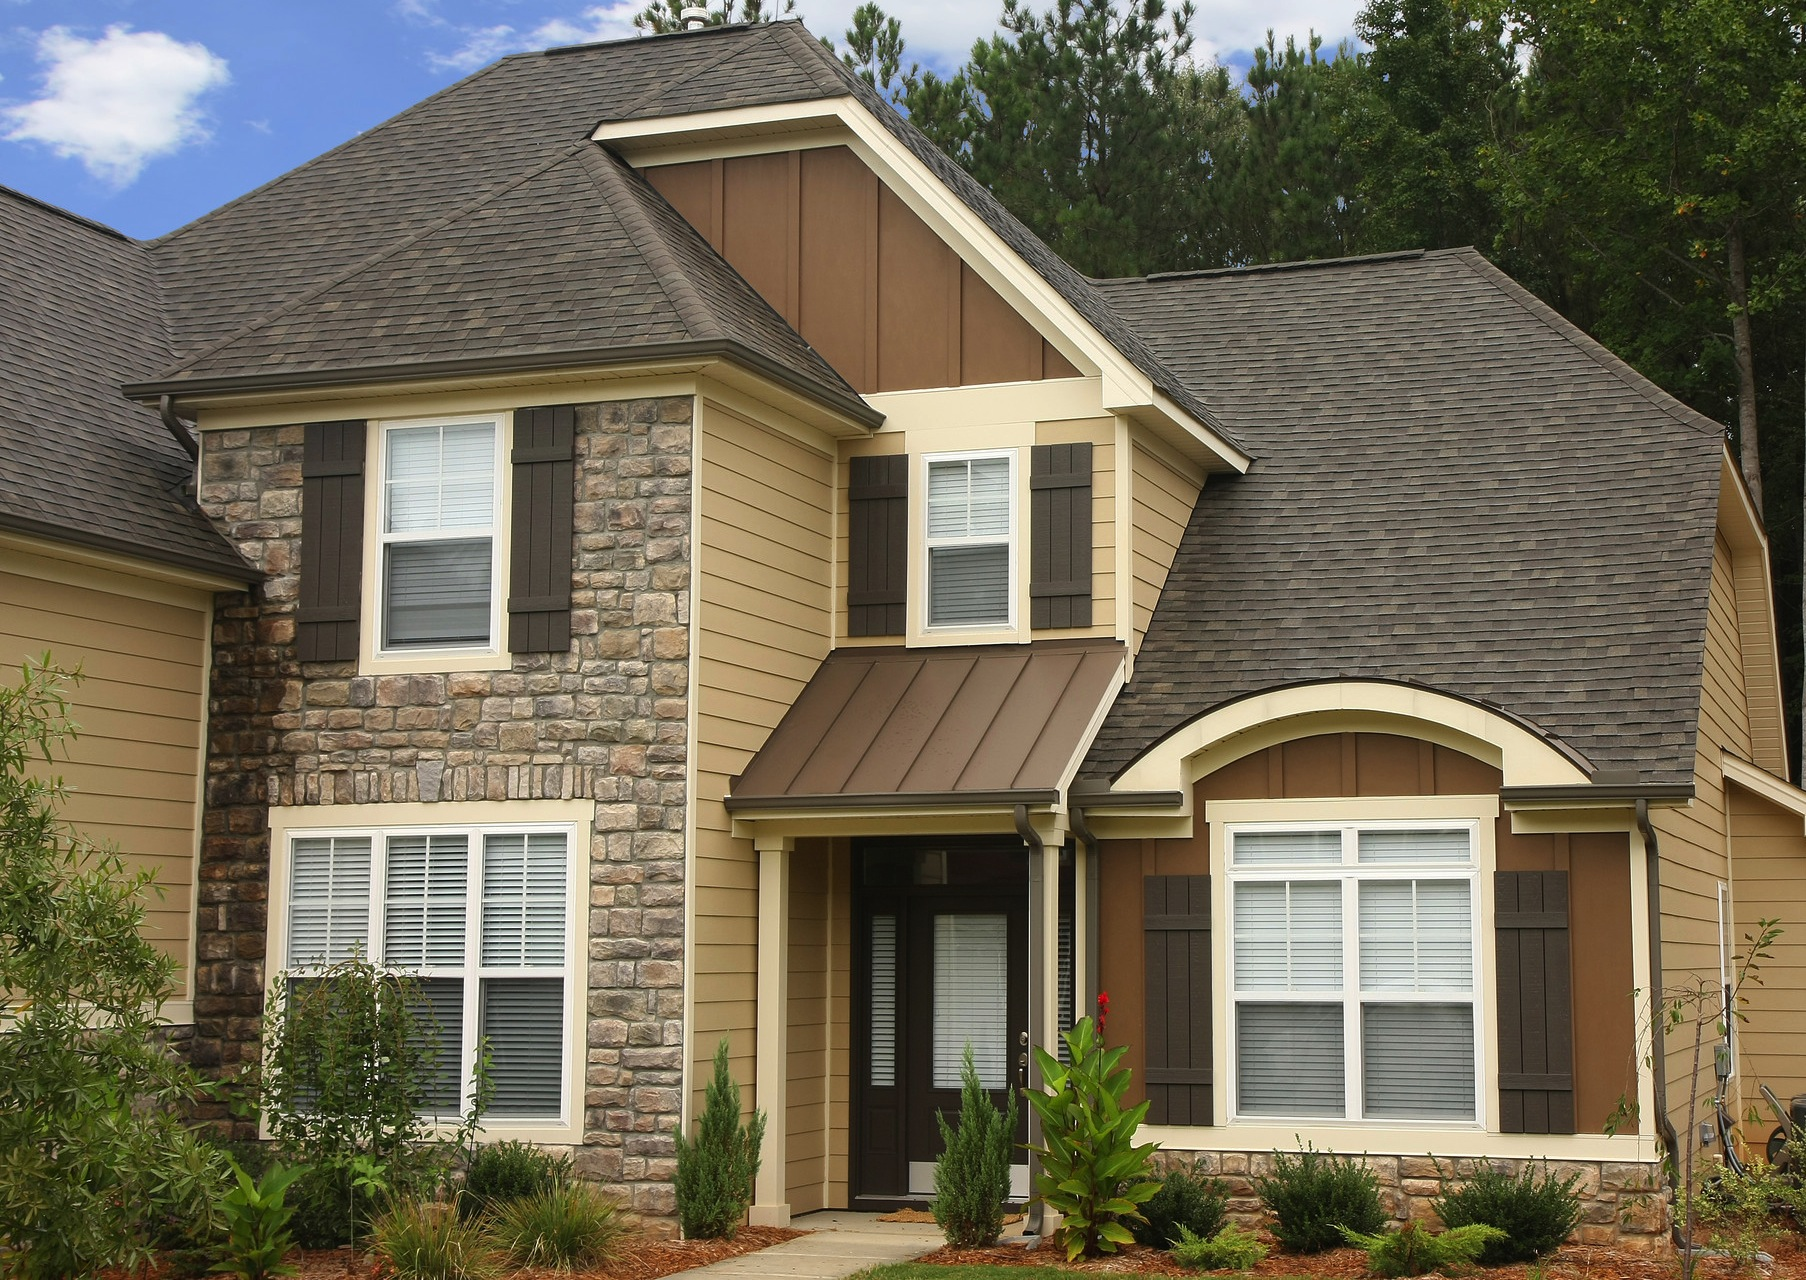 7 ideas to make neutral siding more exciting for your hoa for Hardie plank prices